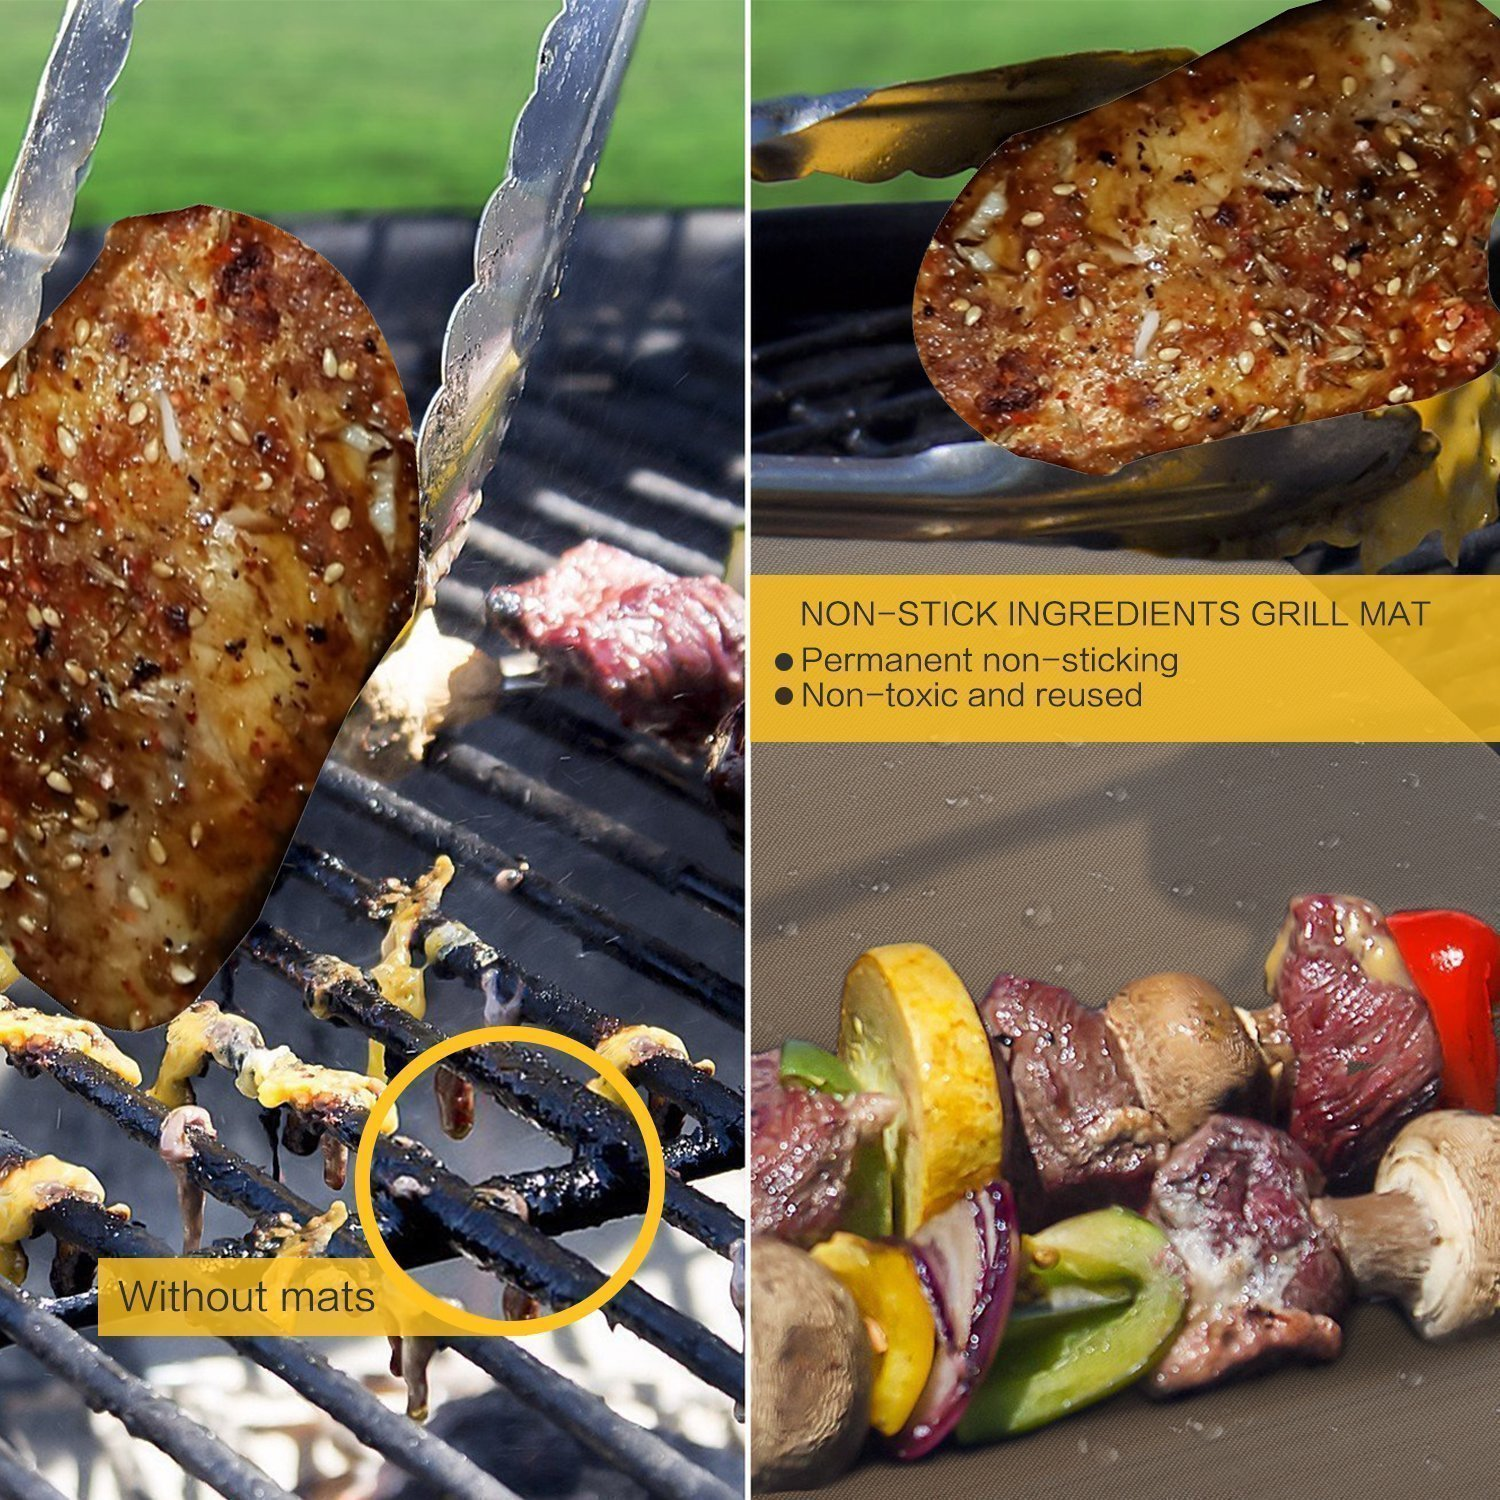 Other Bbq Tools Home & Garden 8pcs Copper Grill Bake Mats Non-stick Easy To Clean Reusable Grill Mats For Bbq Grilling Baking On Gas Electric Charcoal Grill